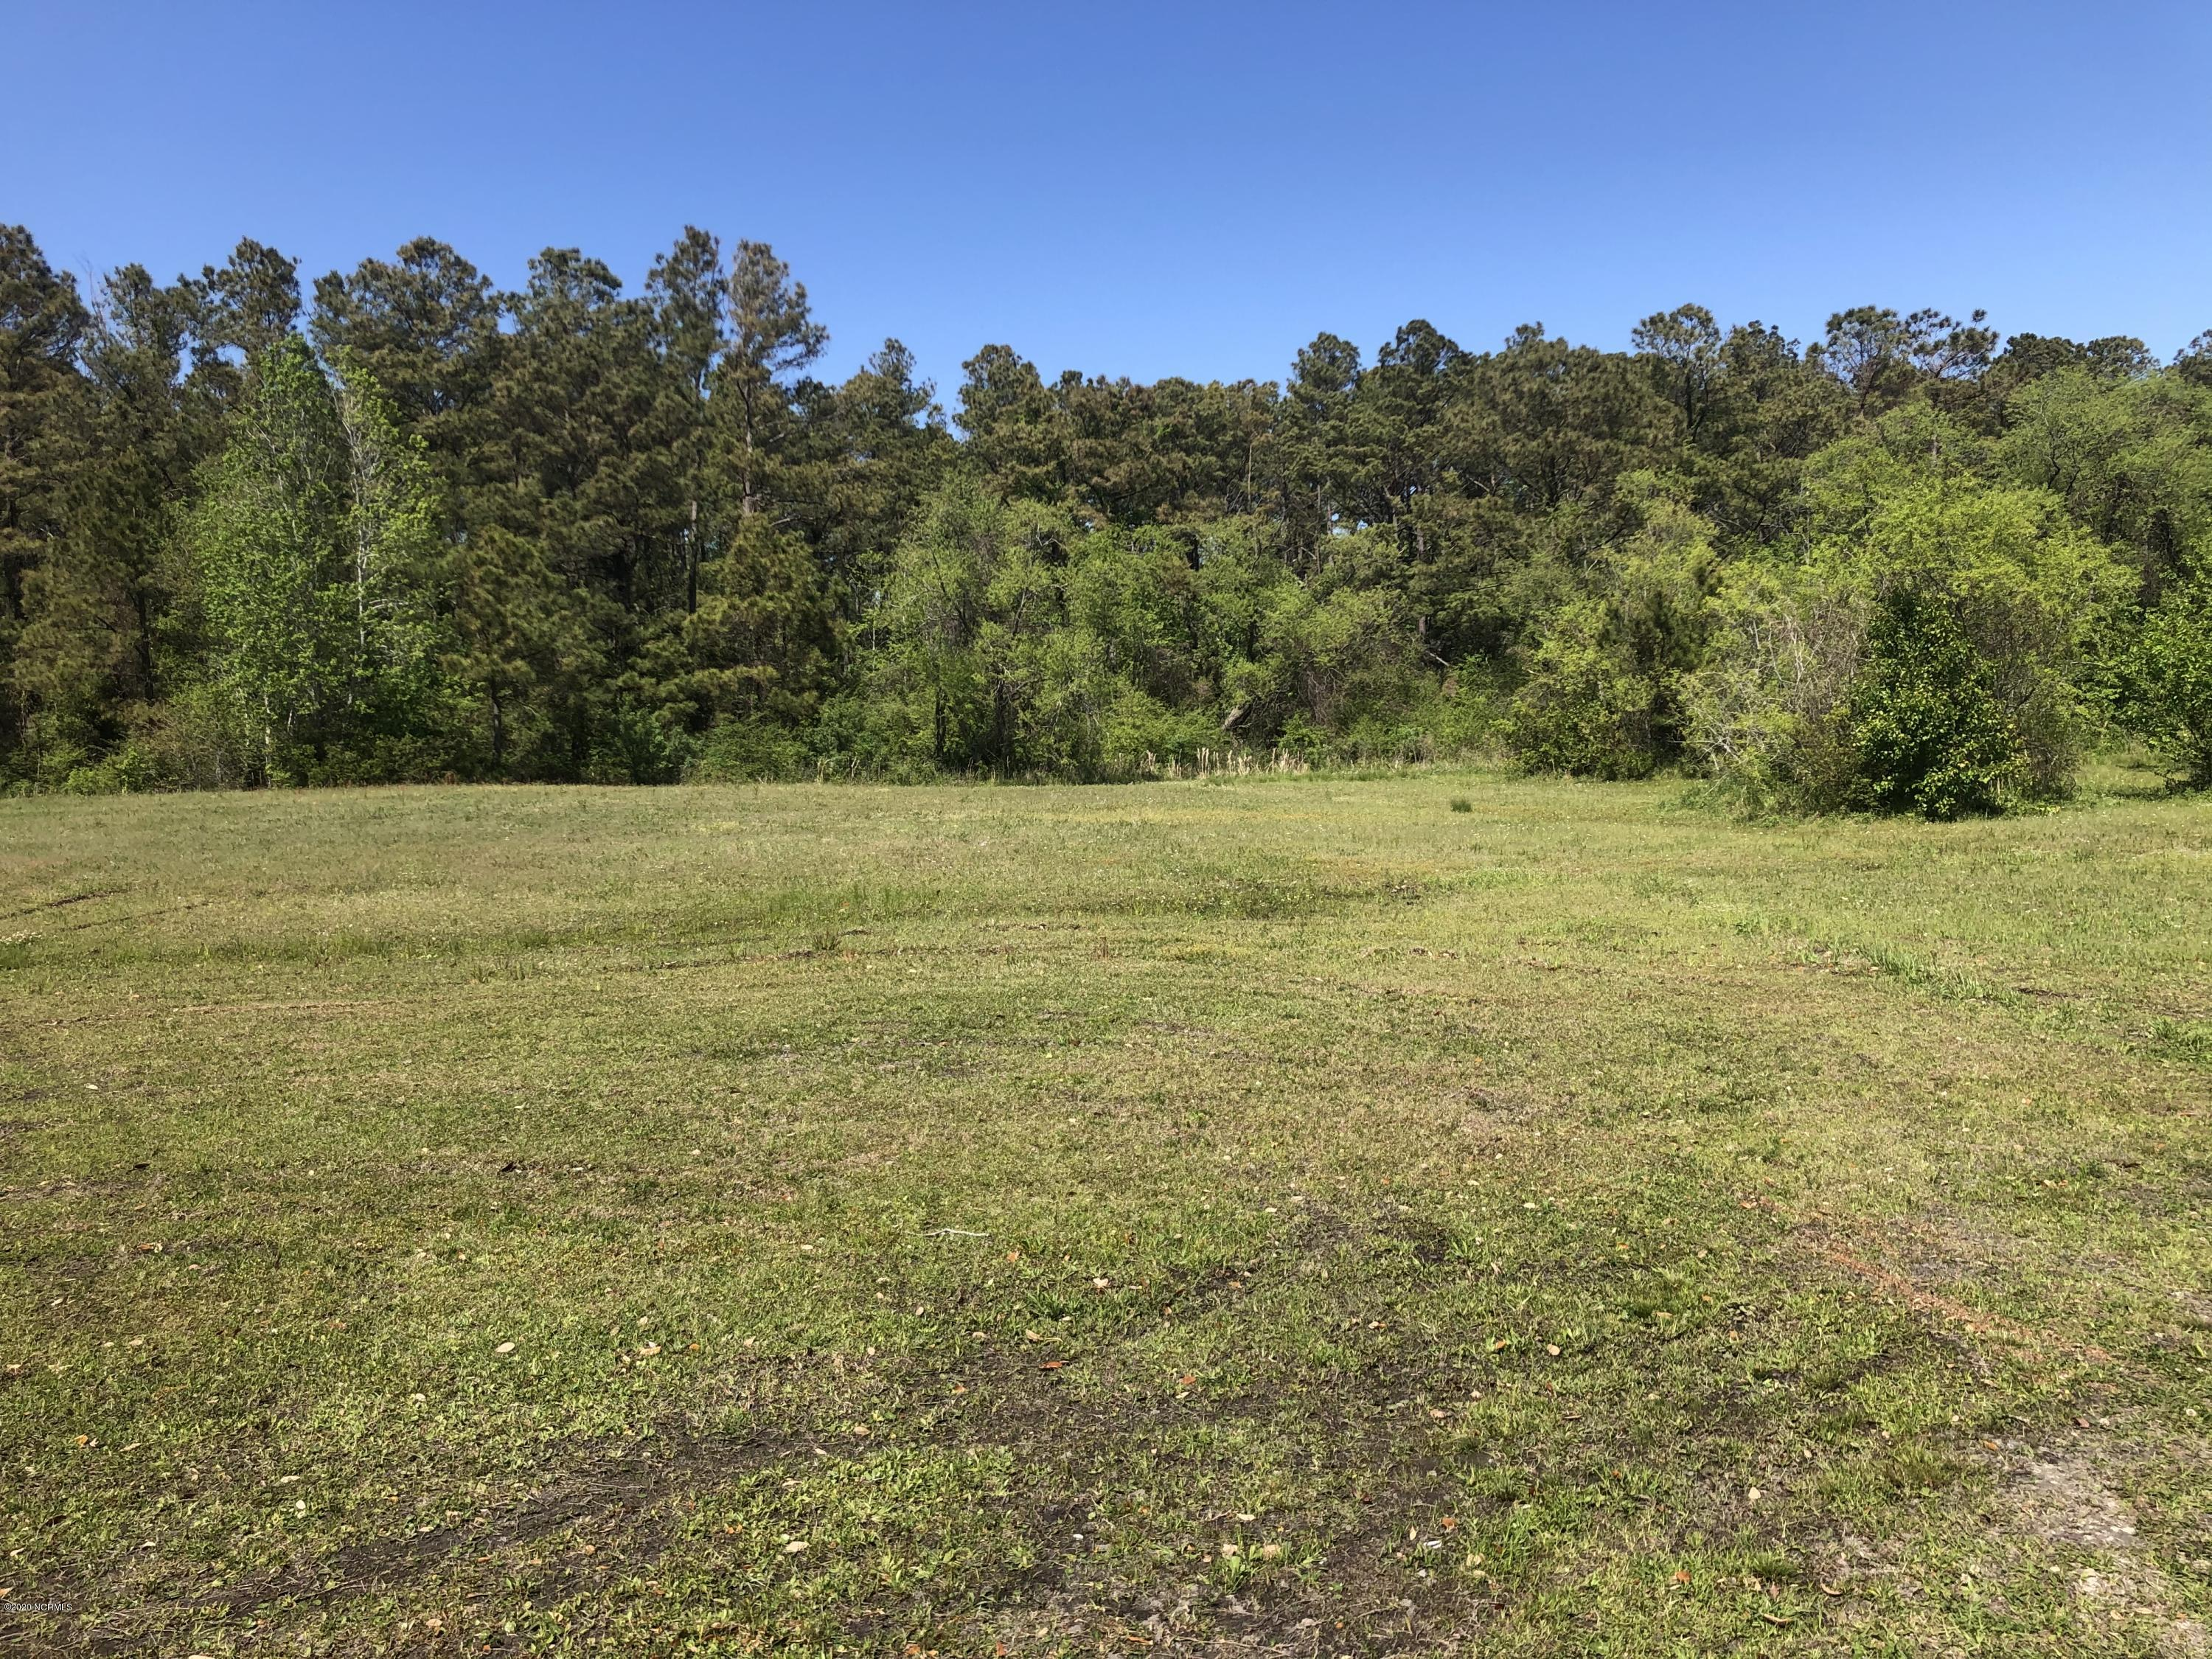 Tbd Hwy 70, Morehead City, North Carolina 28557, ,Undeveloped,For sale,Hwy 70,100213685